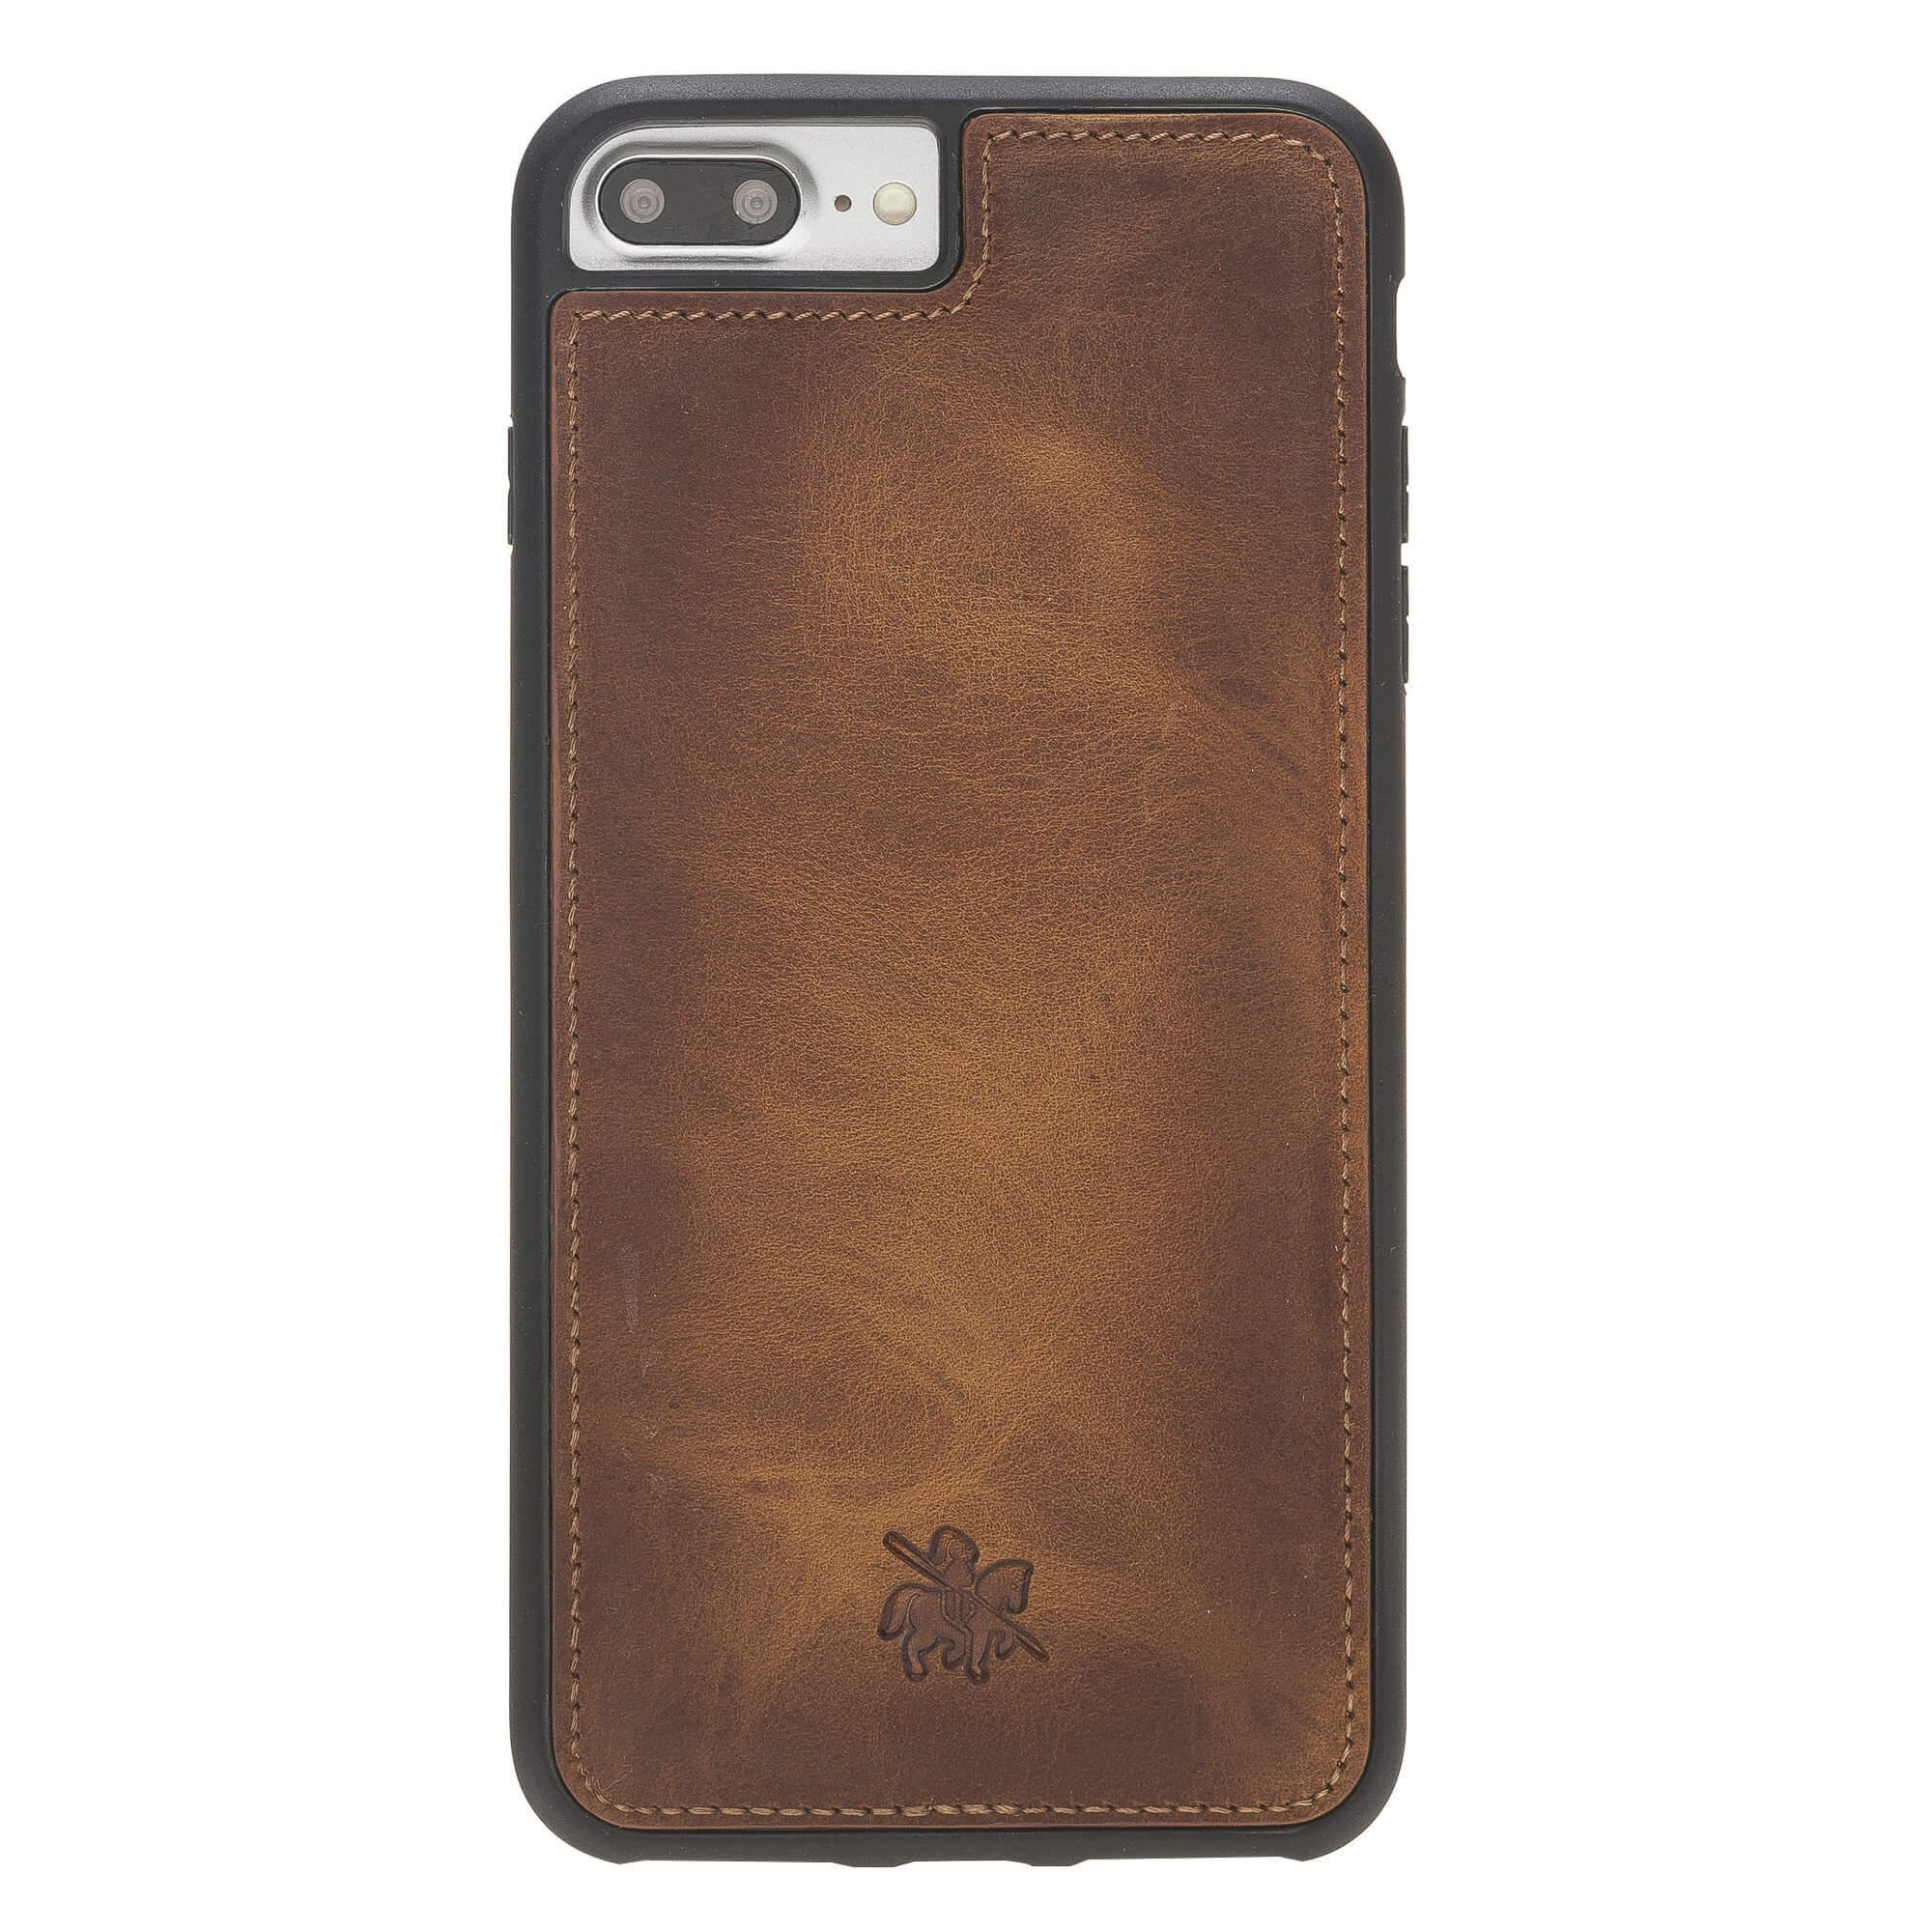 Lucca Snap On Leather Case for iPhone 8 Plus